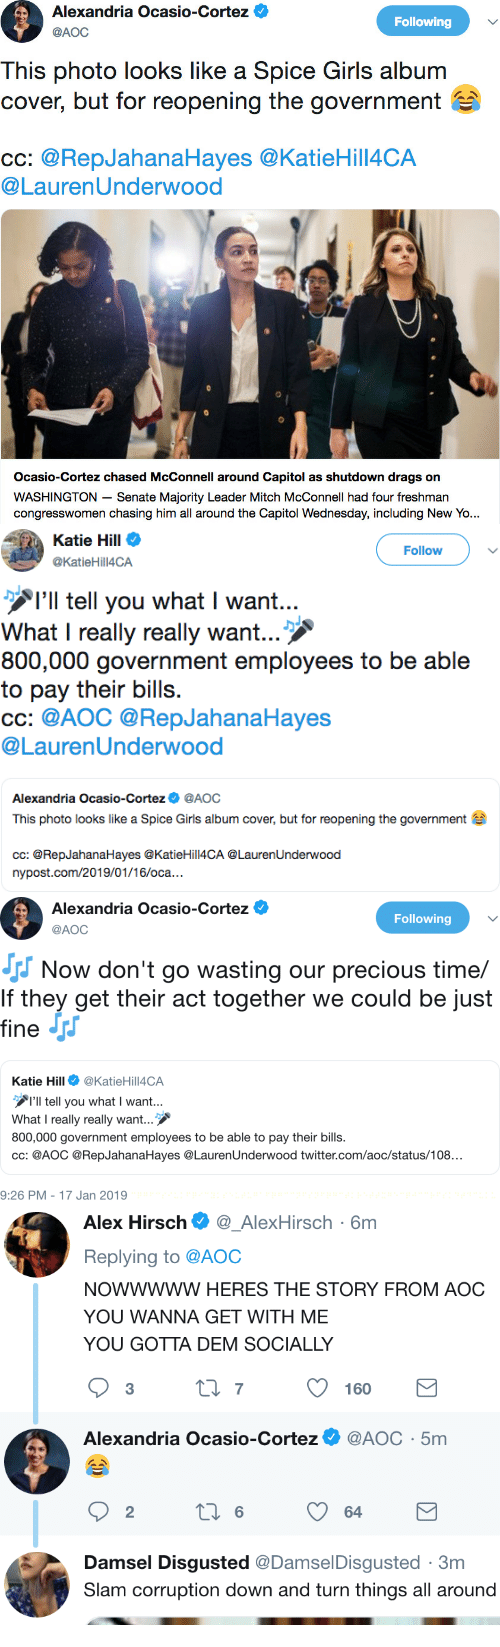 Girls, Precious, and Twitter: Alexandria Ocasio-Cortez  AOC  Following  This photo looks like a Spice Girls album  cover, but for reopening the government  Cc: @RepJahanaHayes @KatieHill4CA  @LaurenUnderwood  Ocasio-Cortez chased McConnell around Capitol as shutdown drags on  WASHINGTON - Senate Majority Leader Mitch McConnell had four freshman  congresswomen chasing him all around the Capitol Wednesday, including New Yo...   Katie Hill Φ  ACA  21  Follow  I'll tell you what I want  What I really really want  800,000 government employees to be able  to pay their bills.  CC: @AOC @RepJahanaHayes  @LaurenUnderwood  Alexandria Ocasio-Cortez@AOC  This photo looks like a Spice Giris album cover, but for reopening the government  cc: @RepJahanaHayes @KatieHill4CA @LaurenUnderwood  nypost.com/2019/01/16/oca...   Alexandria Ocasio-Cortez  Following  @AOC  Now don't go wasting our precious time/  If they get their act together we could be just  fine Jrr  Katie Hill@KatieHill4CA  Il tell you what I want...  What I really really want...  800,000 government employees to be able to pay their bills.  cC: @AOC @RepJahanaHayes @LaurenUnderwood twitter.com/aoc/status/108...  9:26 PM- 17 Jan 2019   Alex Hirsch_AlexHirsch-6m  Replying to @AOC  NOWWWWW HERES THE STORY FROM AOC  YOU WANNA GET WITH ME  YOU GOTTA DEM SOCIALLY  Alexandria Ocasio.cortez Ф @AOC . 5m  Damsel Disgusted @DamselDisgusted 3m  Slam corruption down and turn things all around